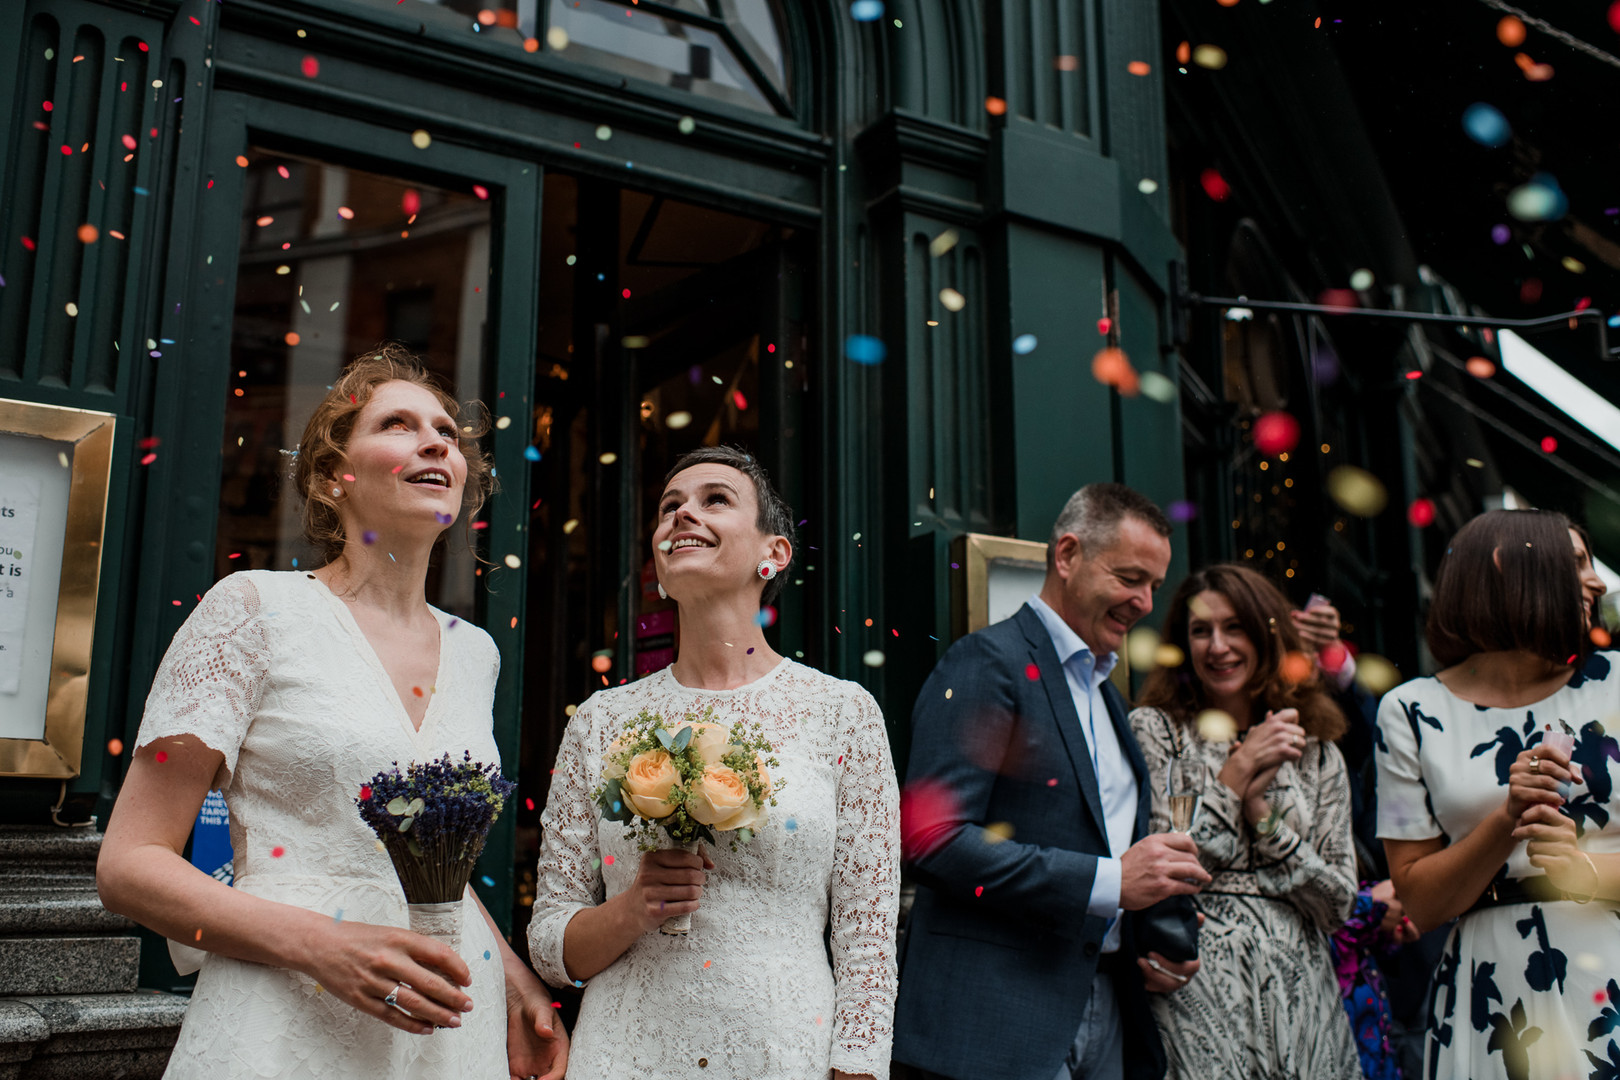 laura_martha_wedding_marylebone_pub.1.jp